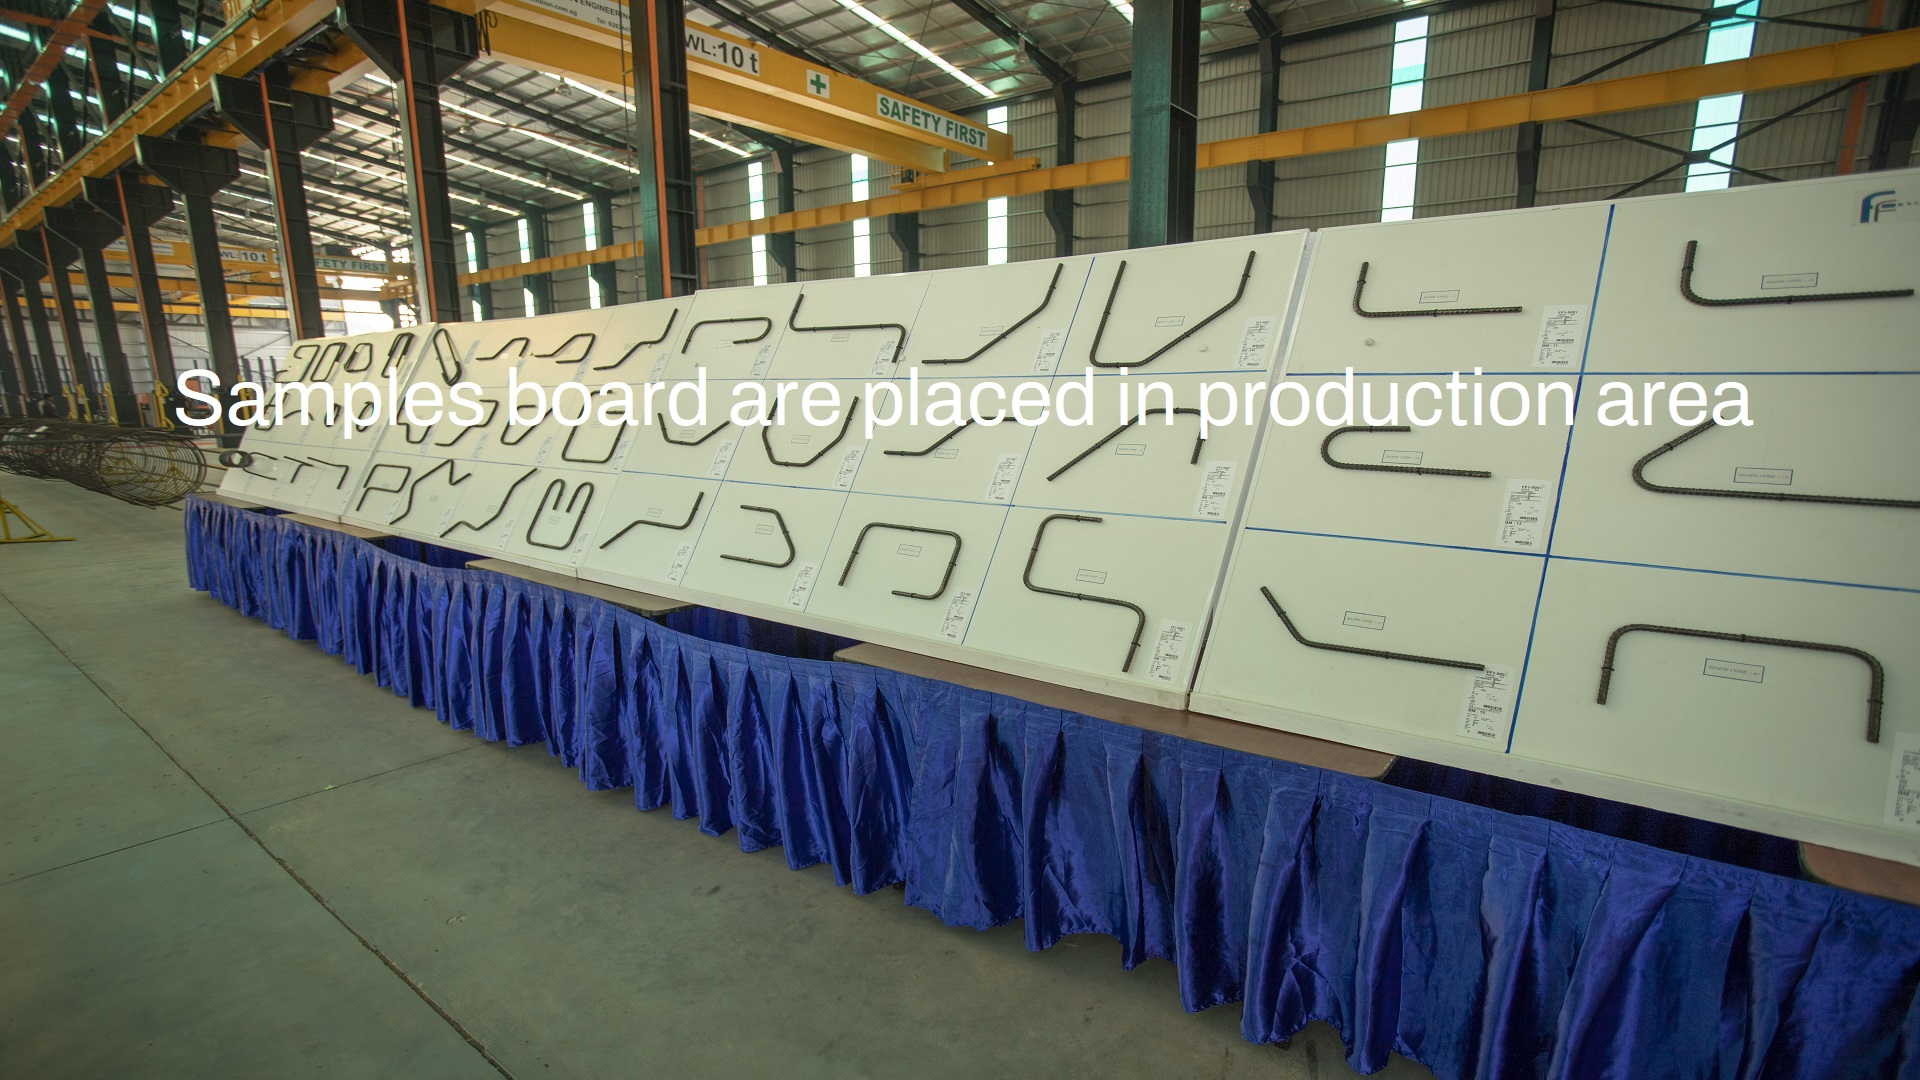 Samples board are placed in production area